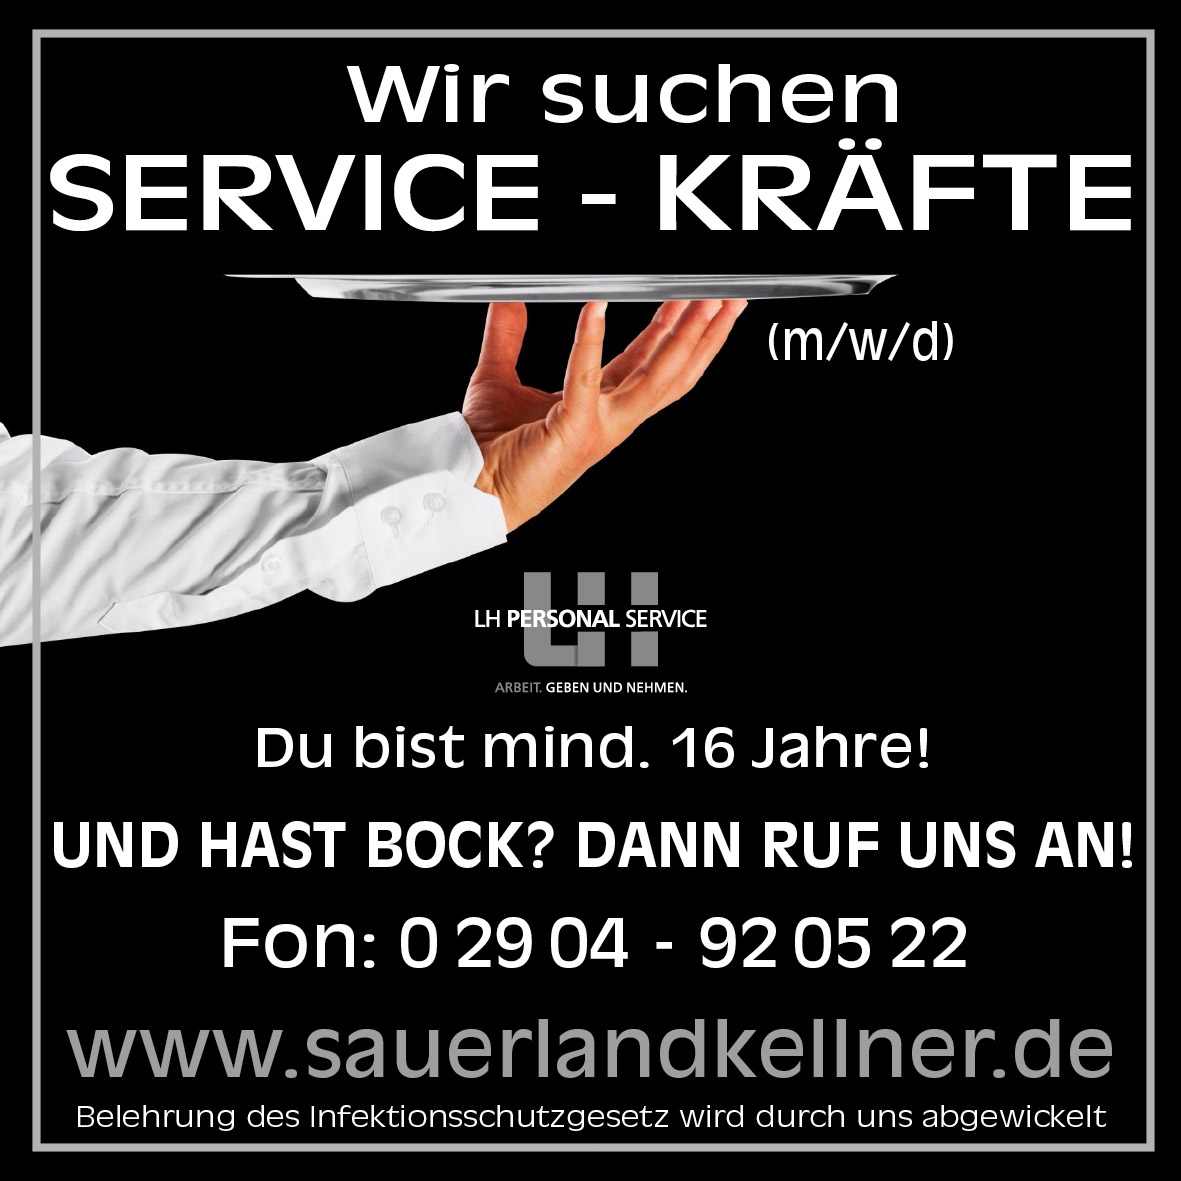 LH Personal Service